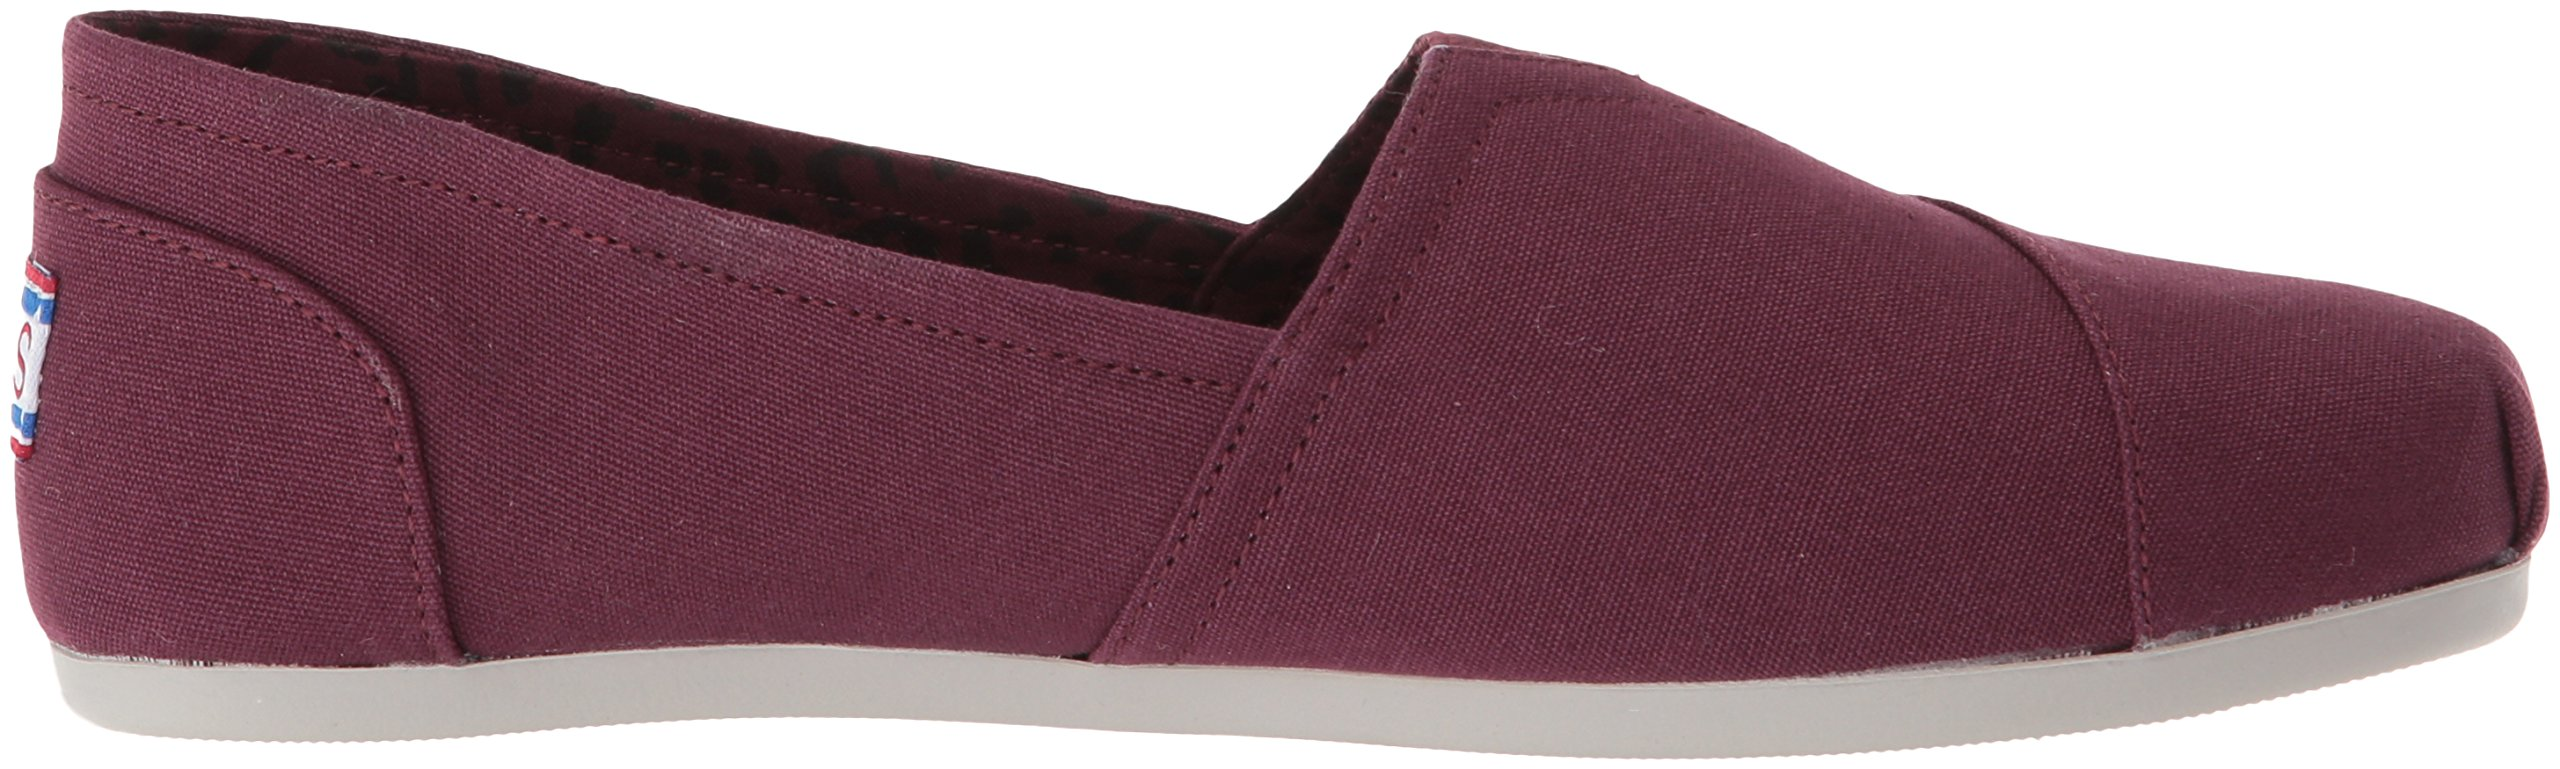 Skechers BOBS Women's Plush-Peace and Love Ballet Flat, Burgundy, 8 M US by Skechers (Image #6)